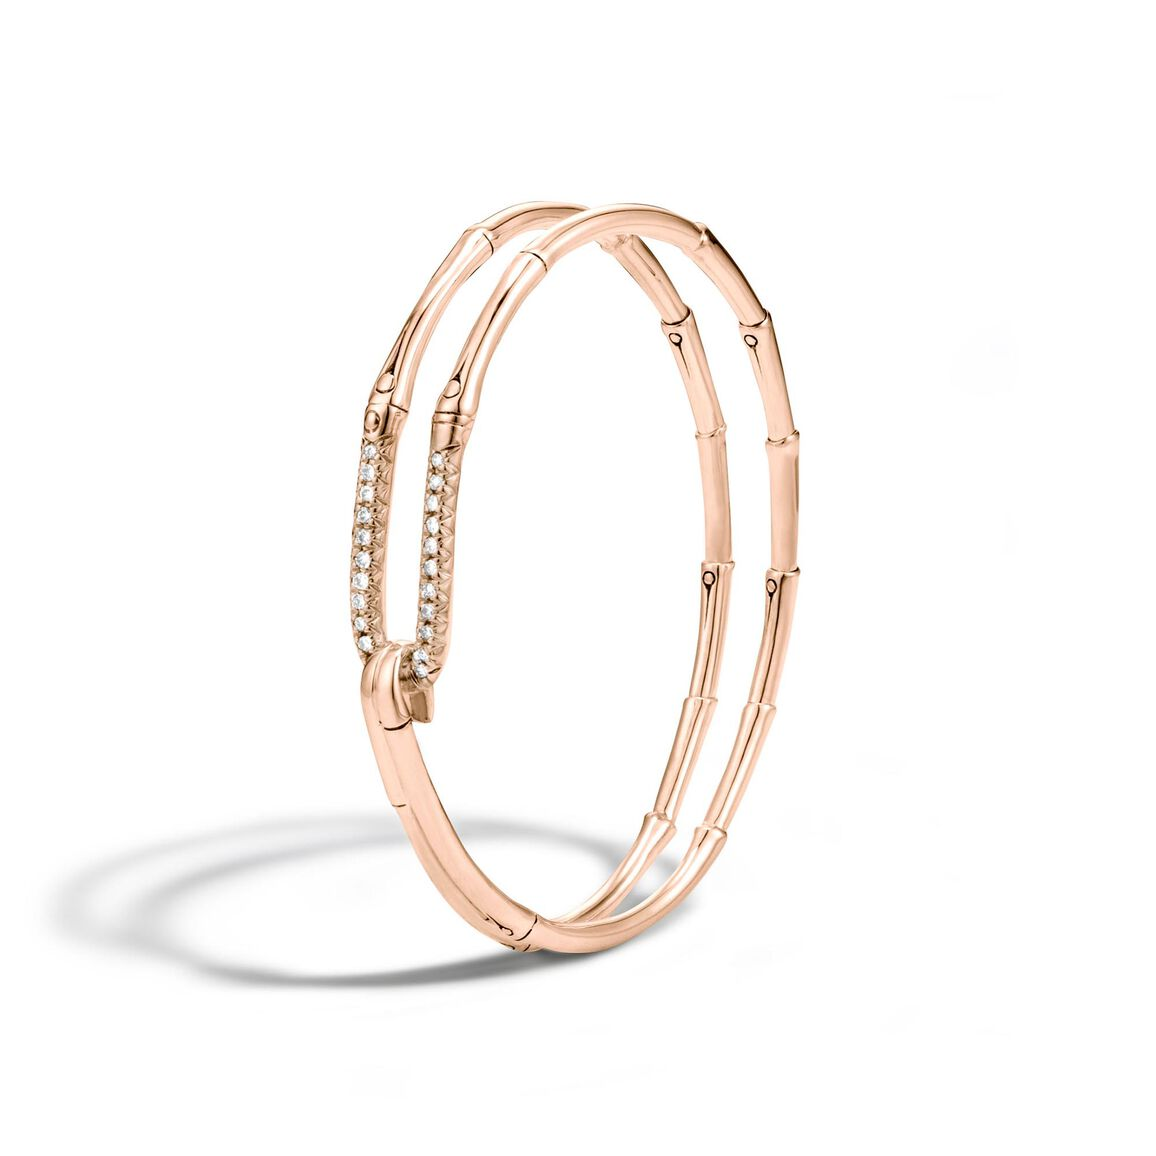 Bamboo Bangle in 18K Gold with Diamonds